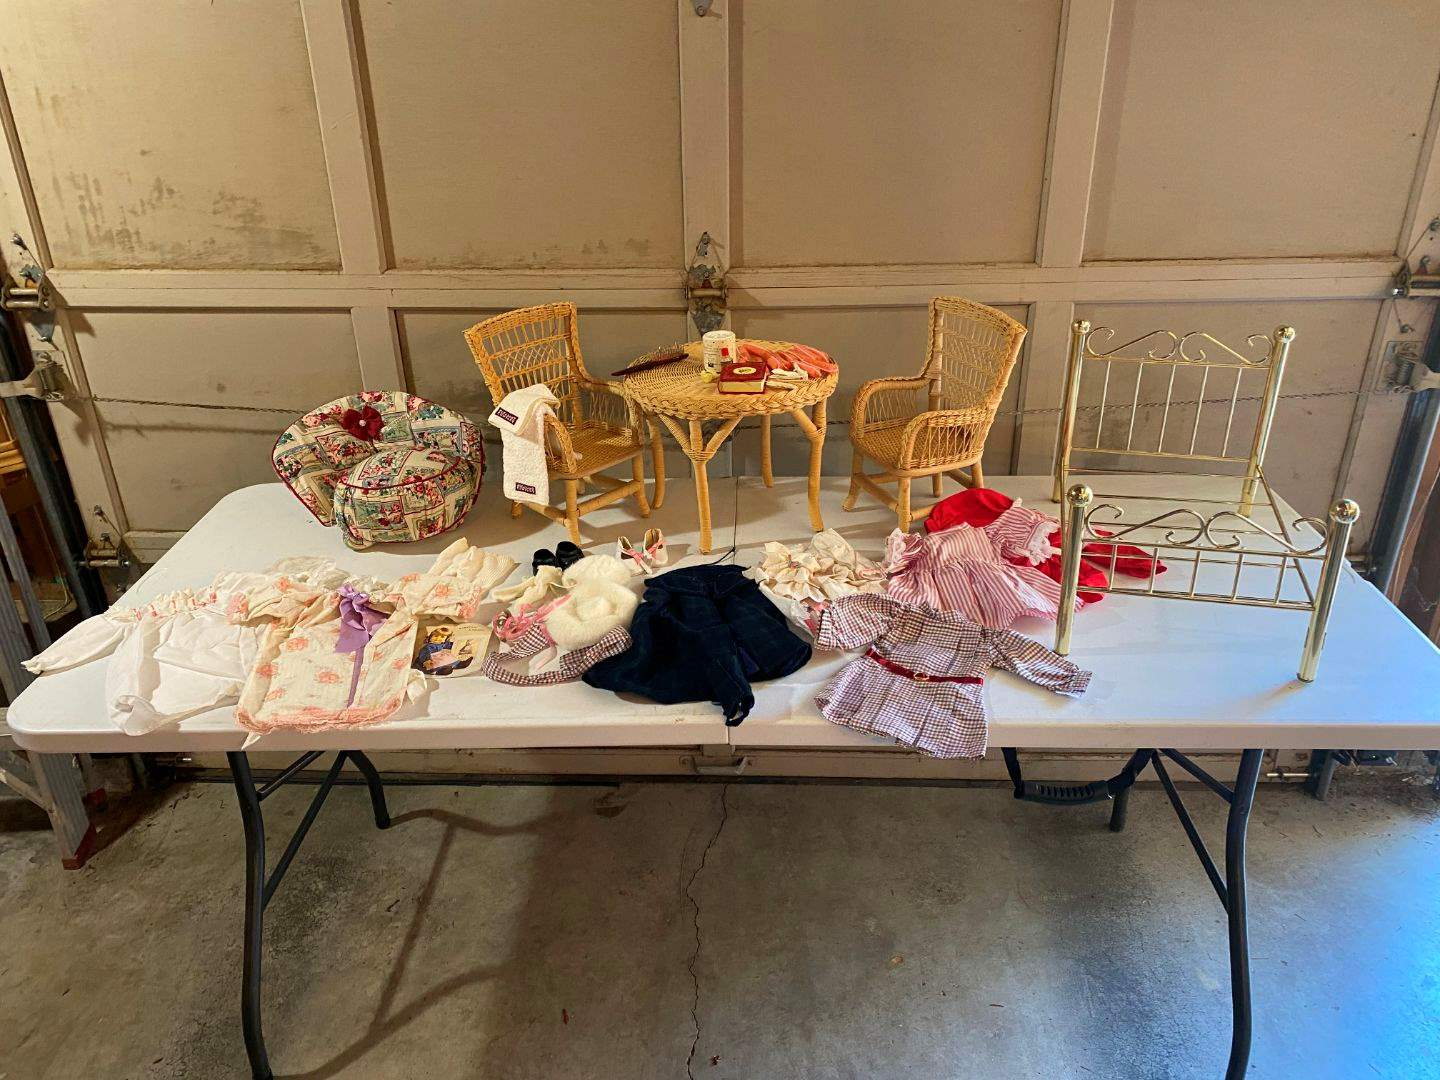 Lot # 194 - American Girl Beautiful Wicker Table & Chairs, American Girl Bed & Clothes  (main image)